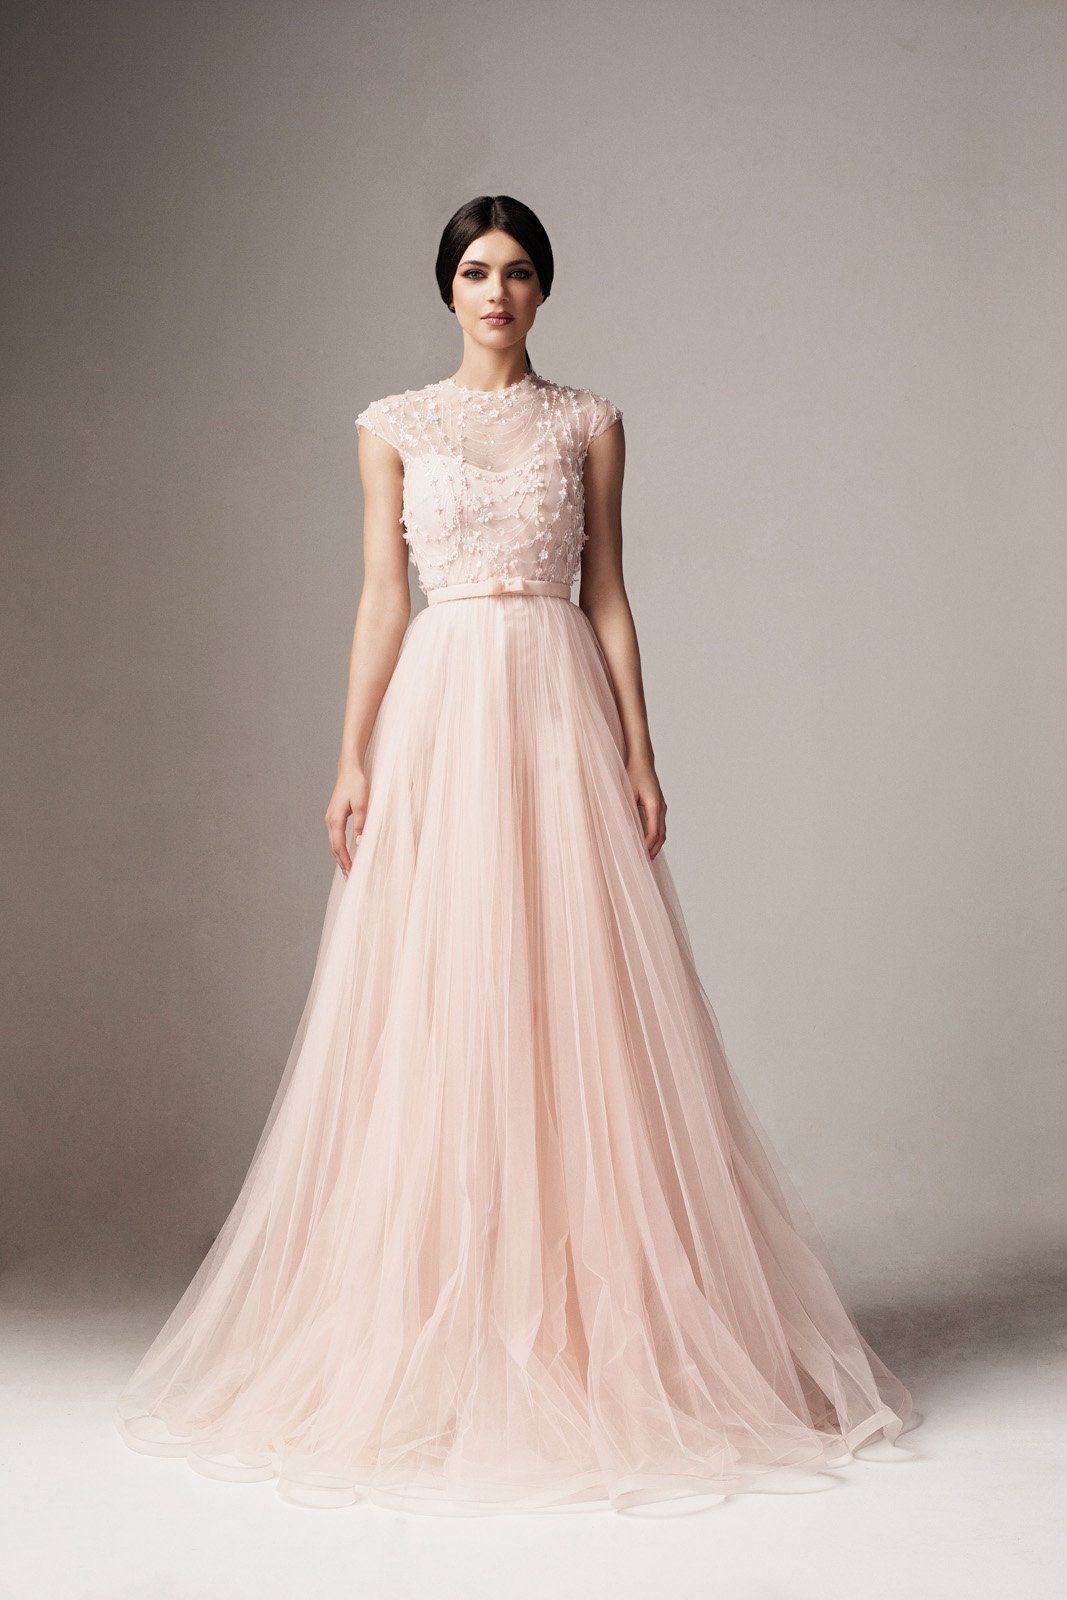 Ana Radu lightpink occasional from tulle cloche dress with floral details accessorized with tied waistband